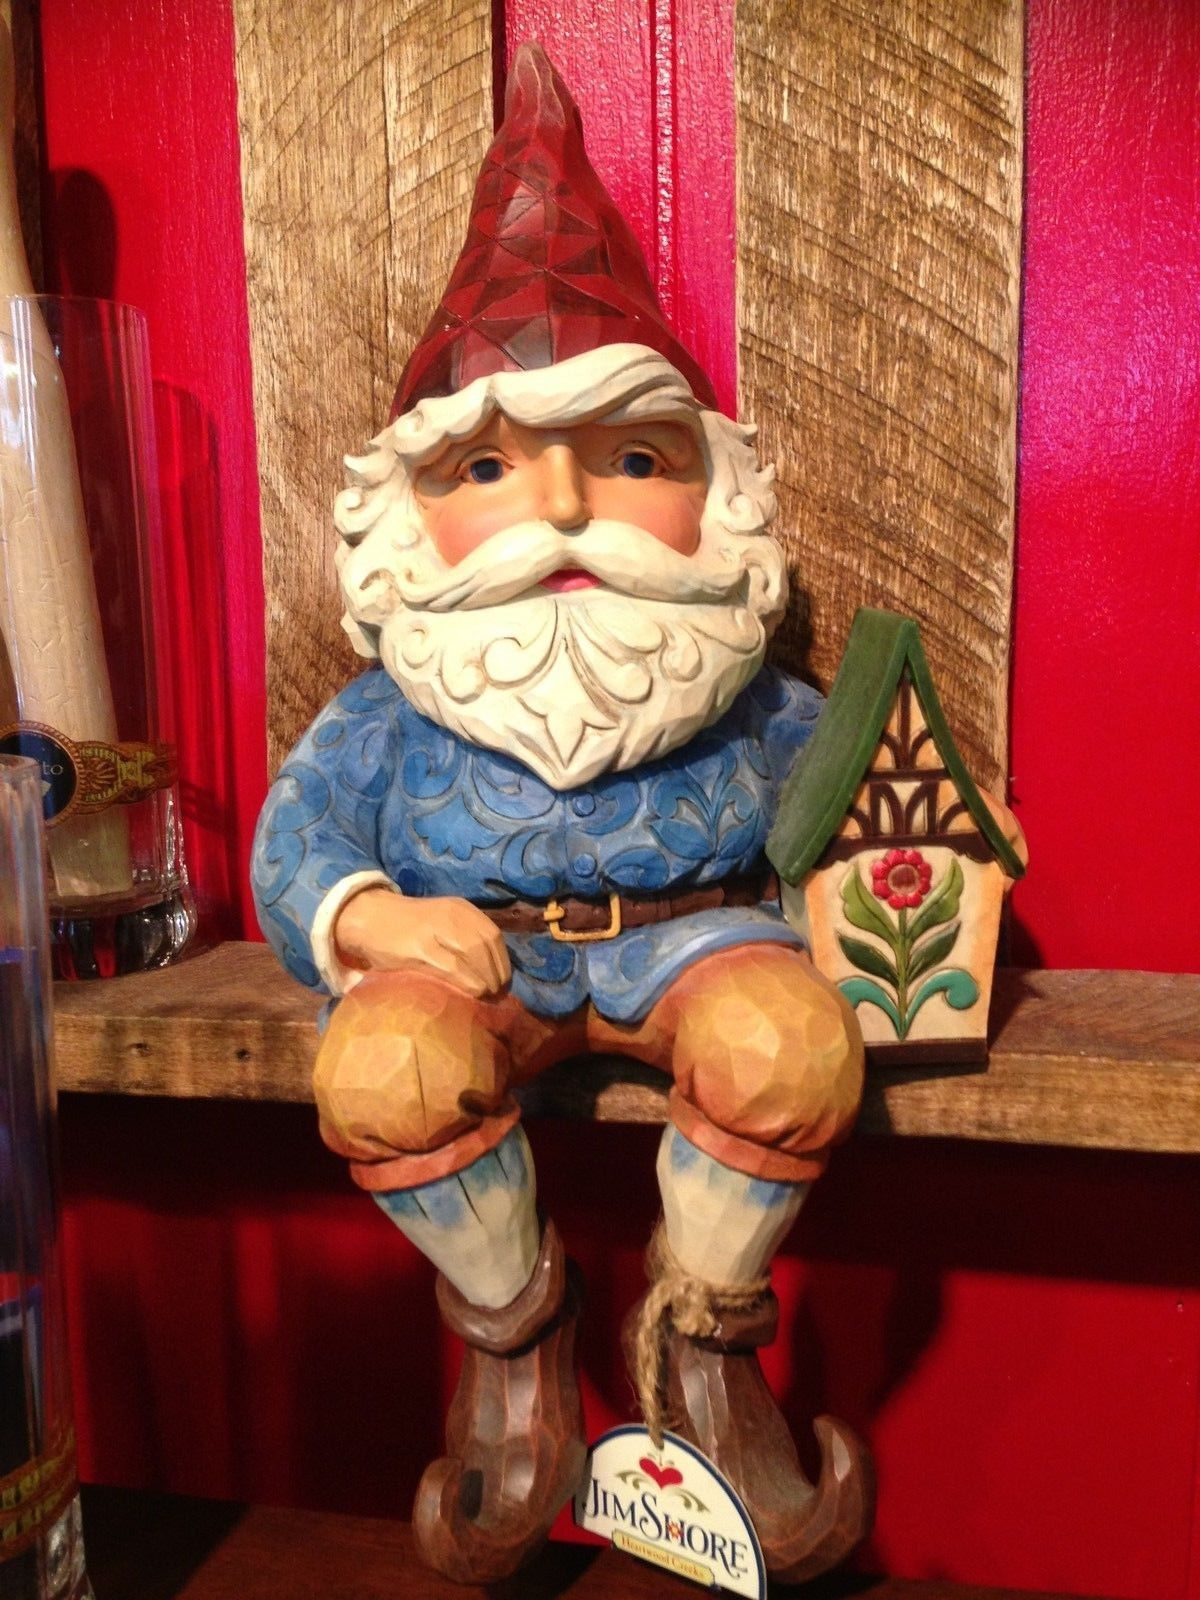 Gnome In Garden: Jim Shore Gnome Large Indoor Outdoor